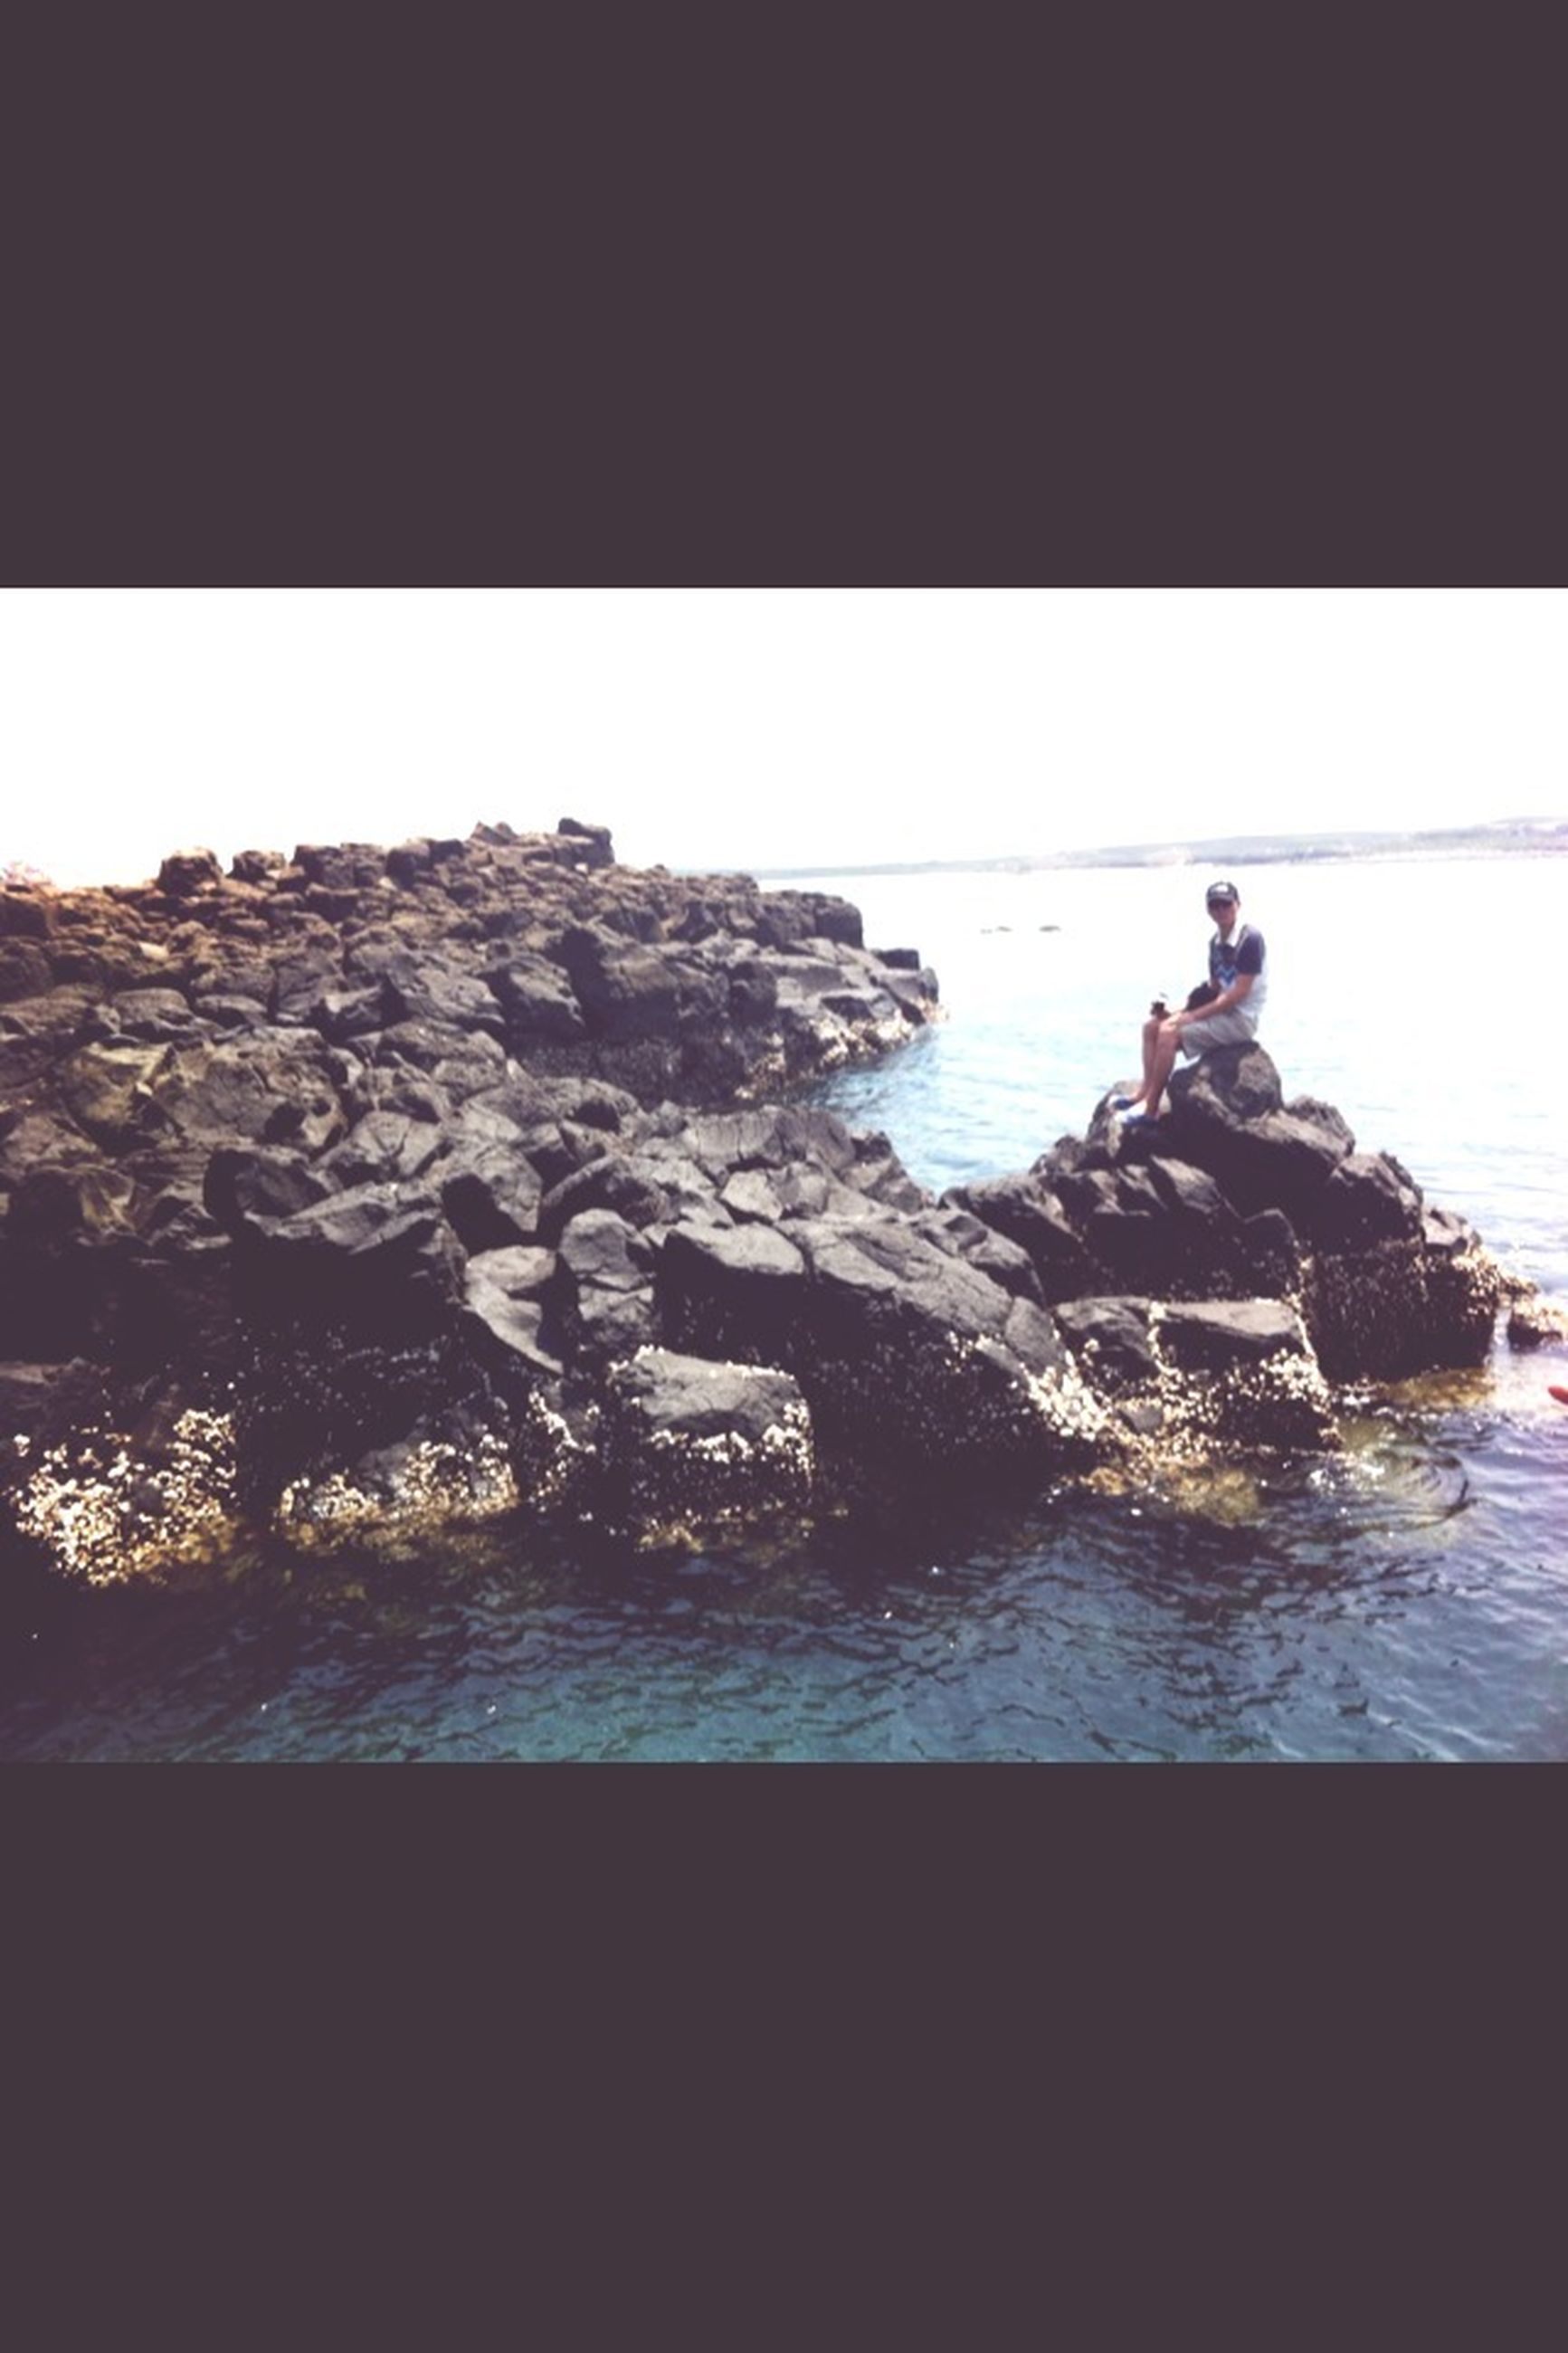 water, sea, rock - object, clear sky, beauty in nature, nature, horizon over water, tranquility, copy space, transfer print, scenics, tranquil scene, rock formation, auto post production filter, waterfront, men, lifestyles, leisure activity, rock